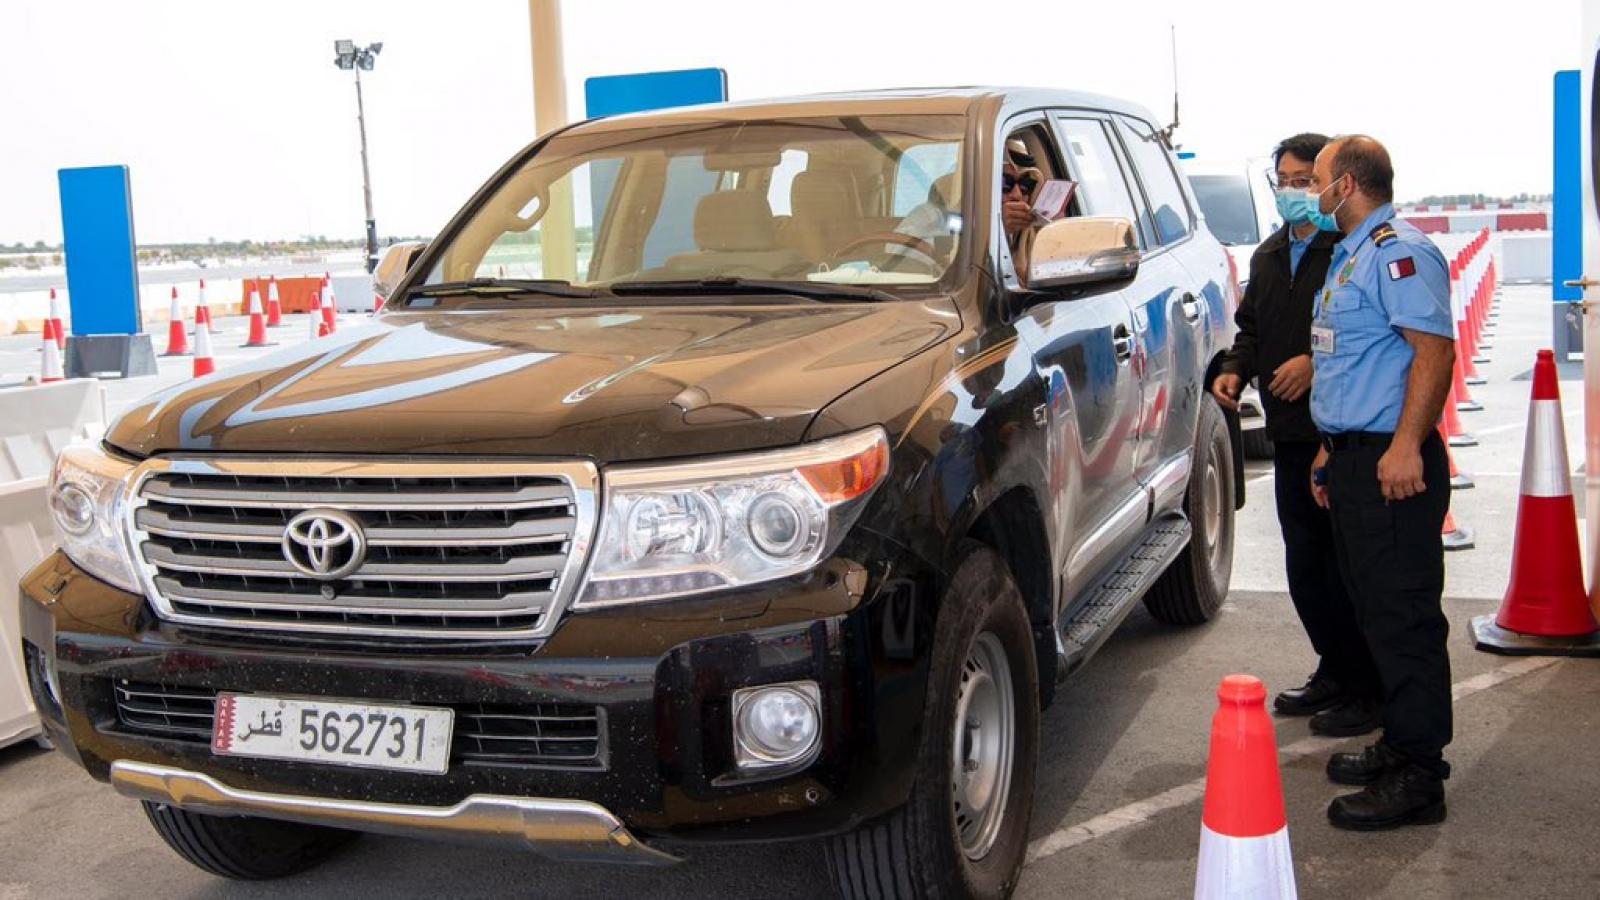 COVID-19 drive-through vaccination center opened in Lusail